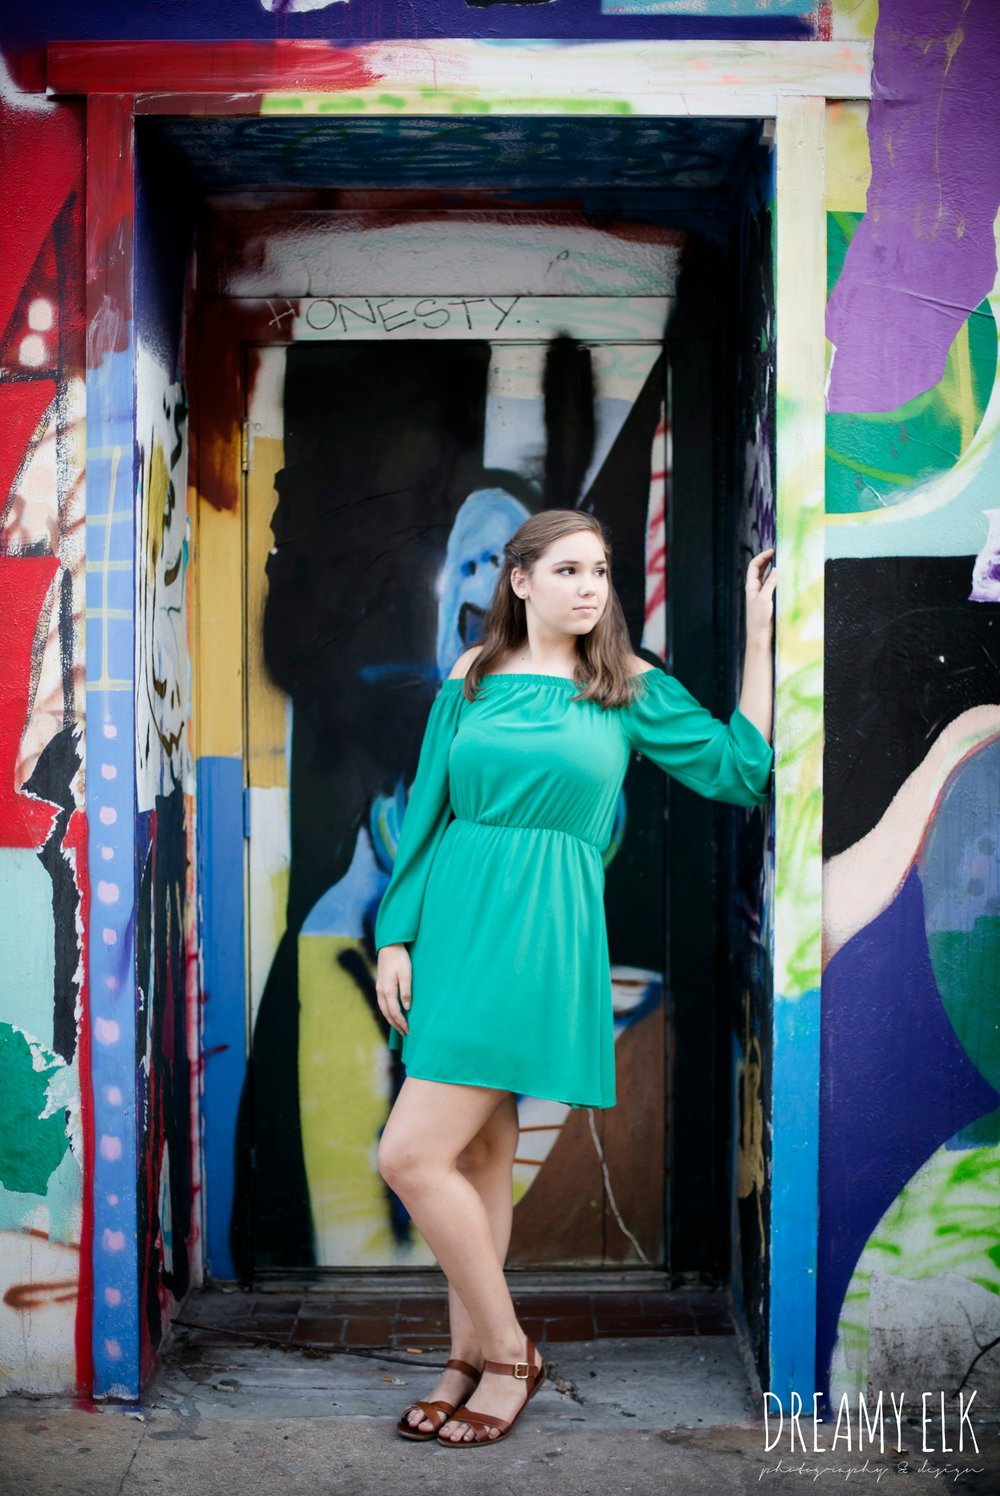 outdoor fall high school senior girl, graffiti wall, mural, downtown austin, texas {dreamy elk photography and design}